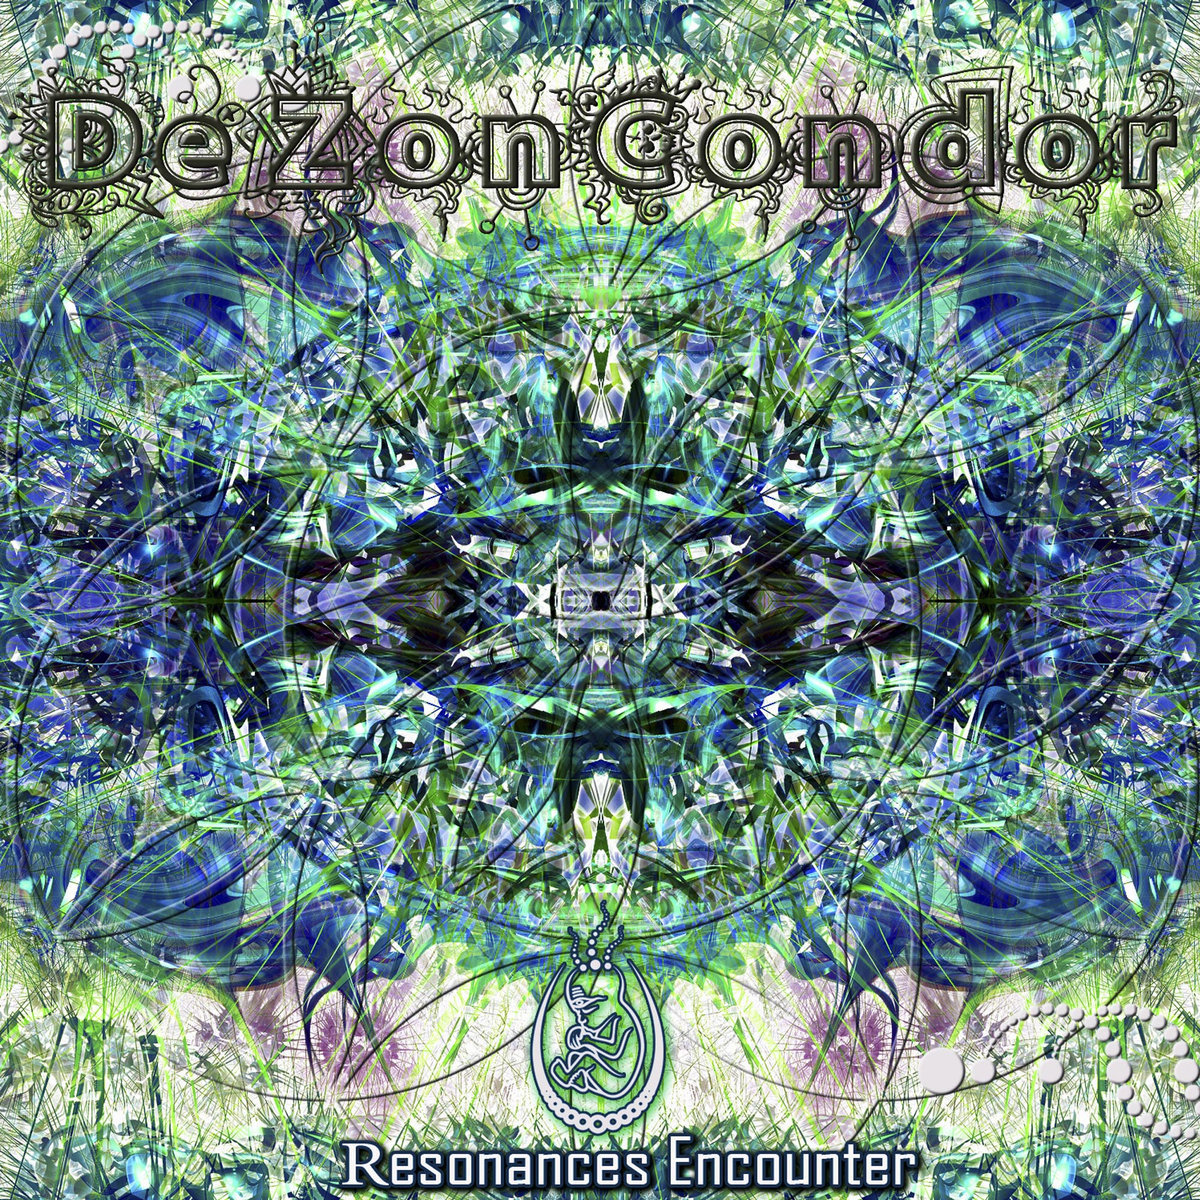 DezonCondor - Resonances Encounter